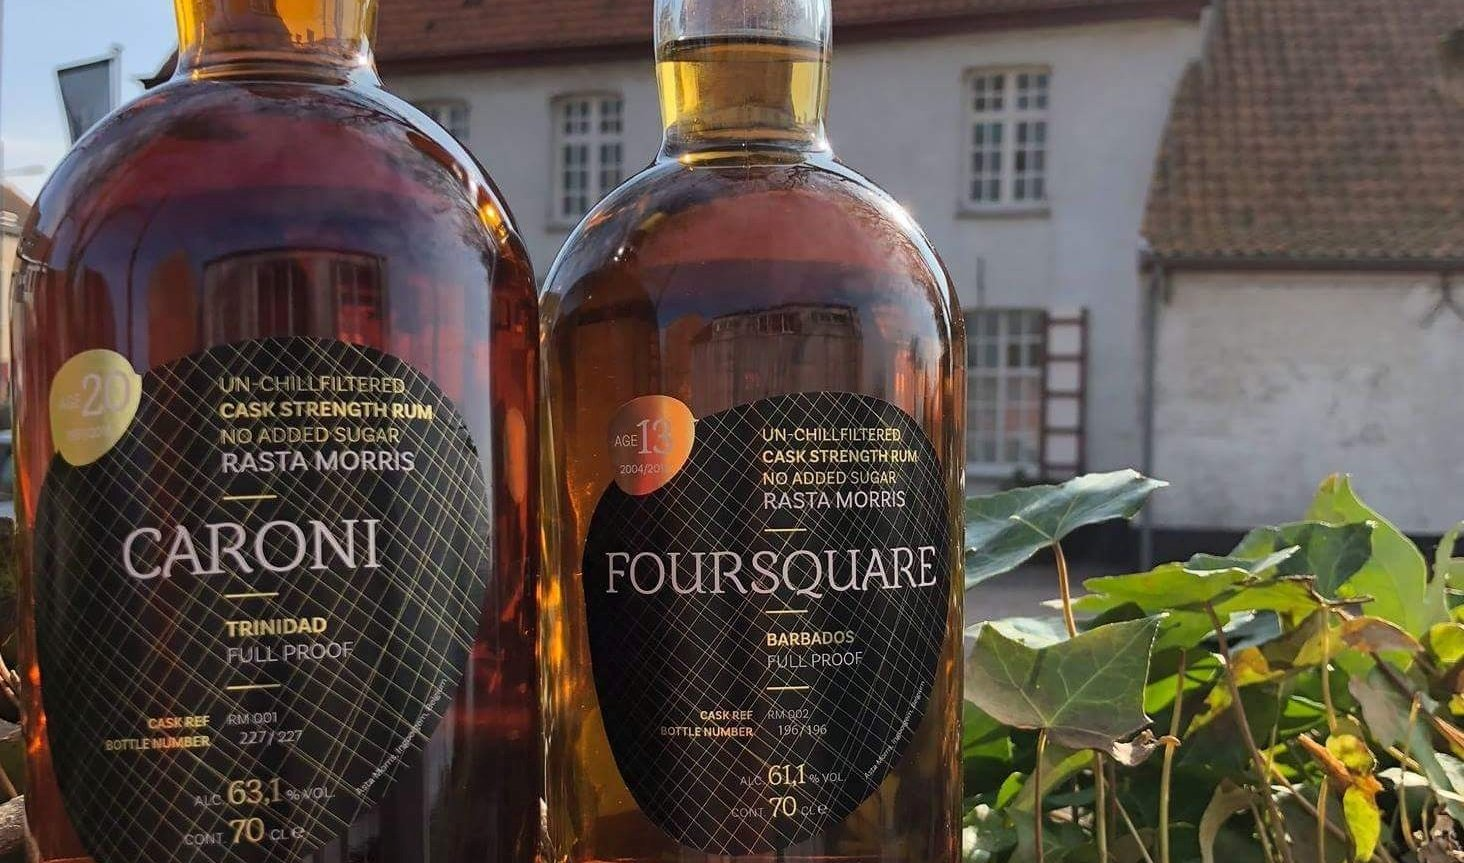 Our Caroni and Foursquare rum